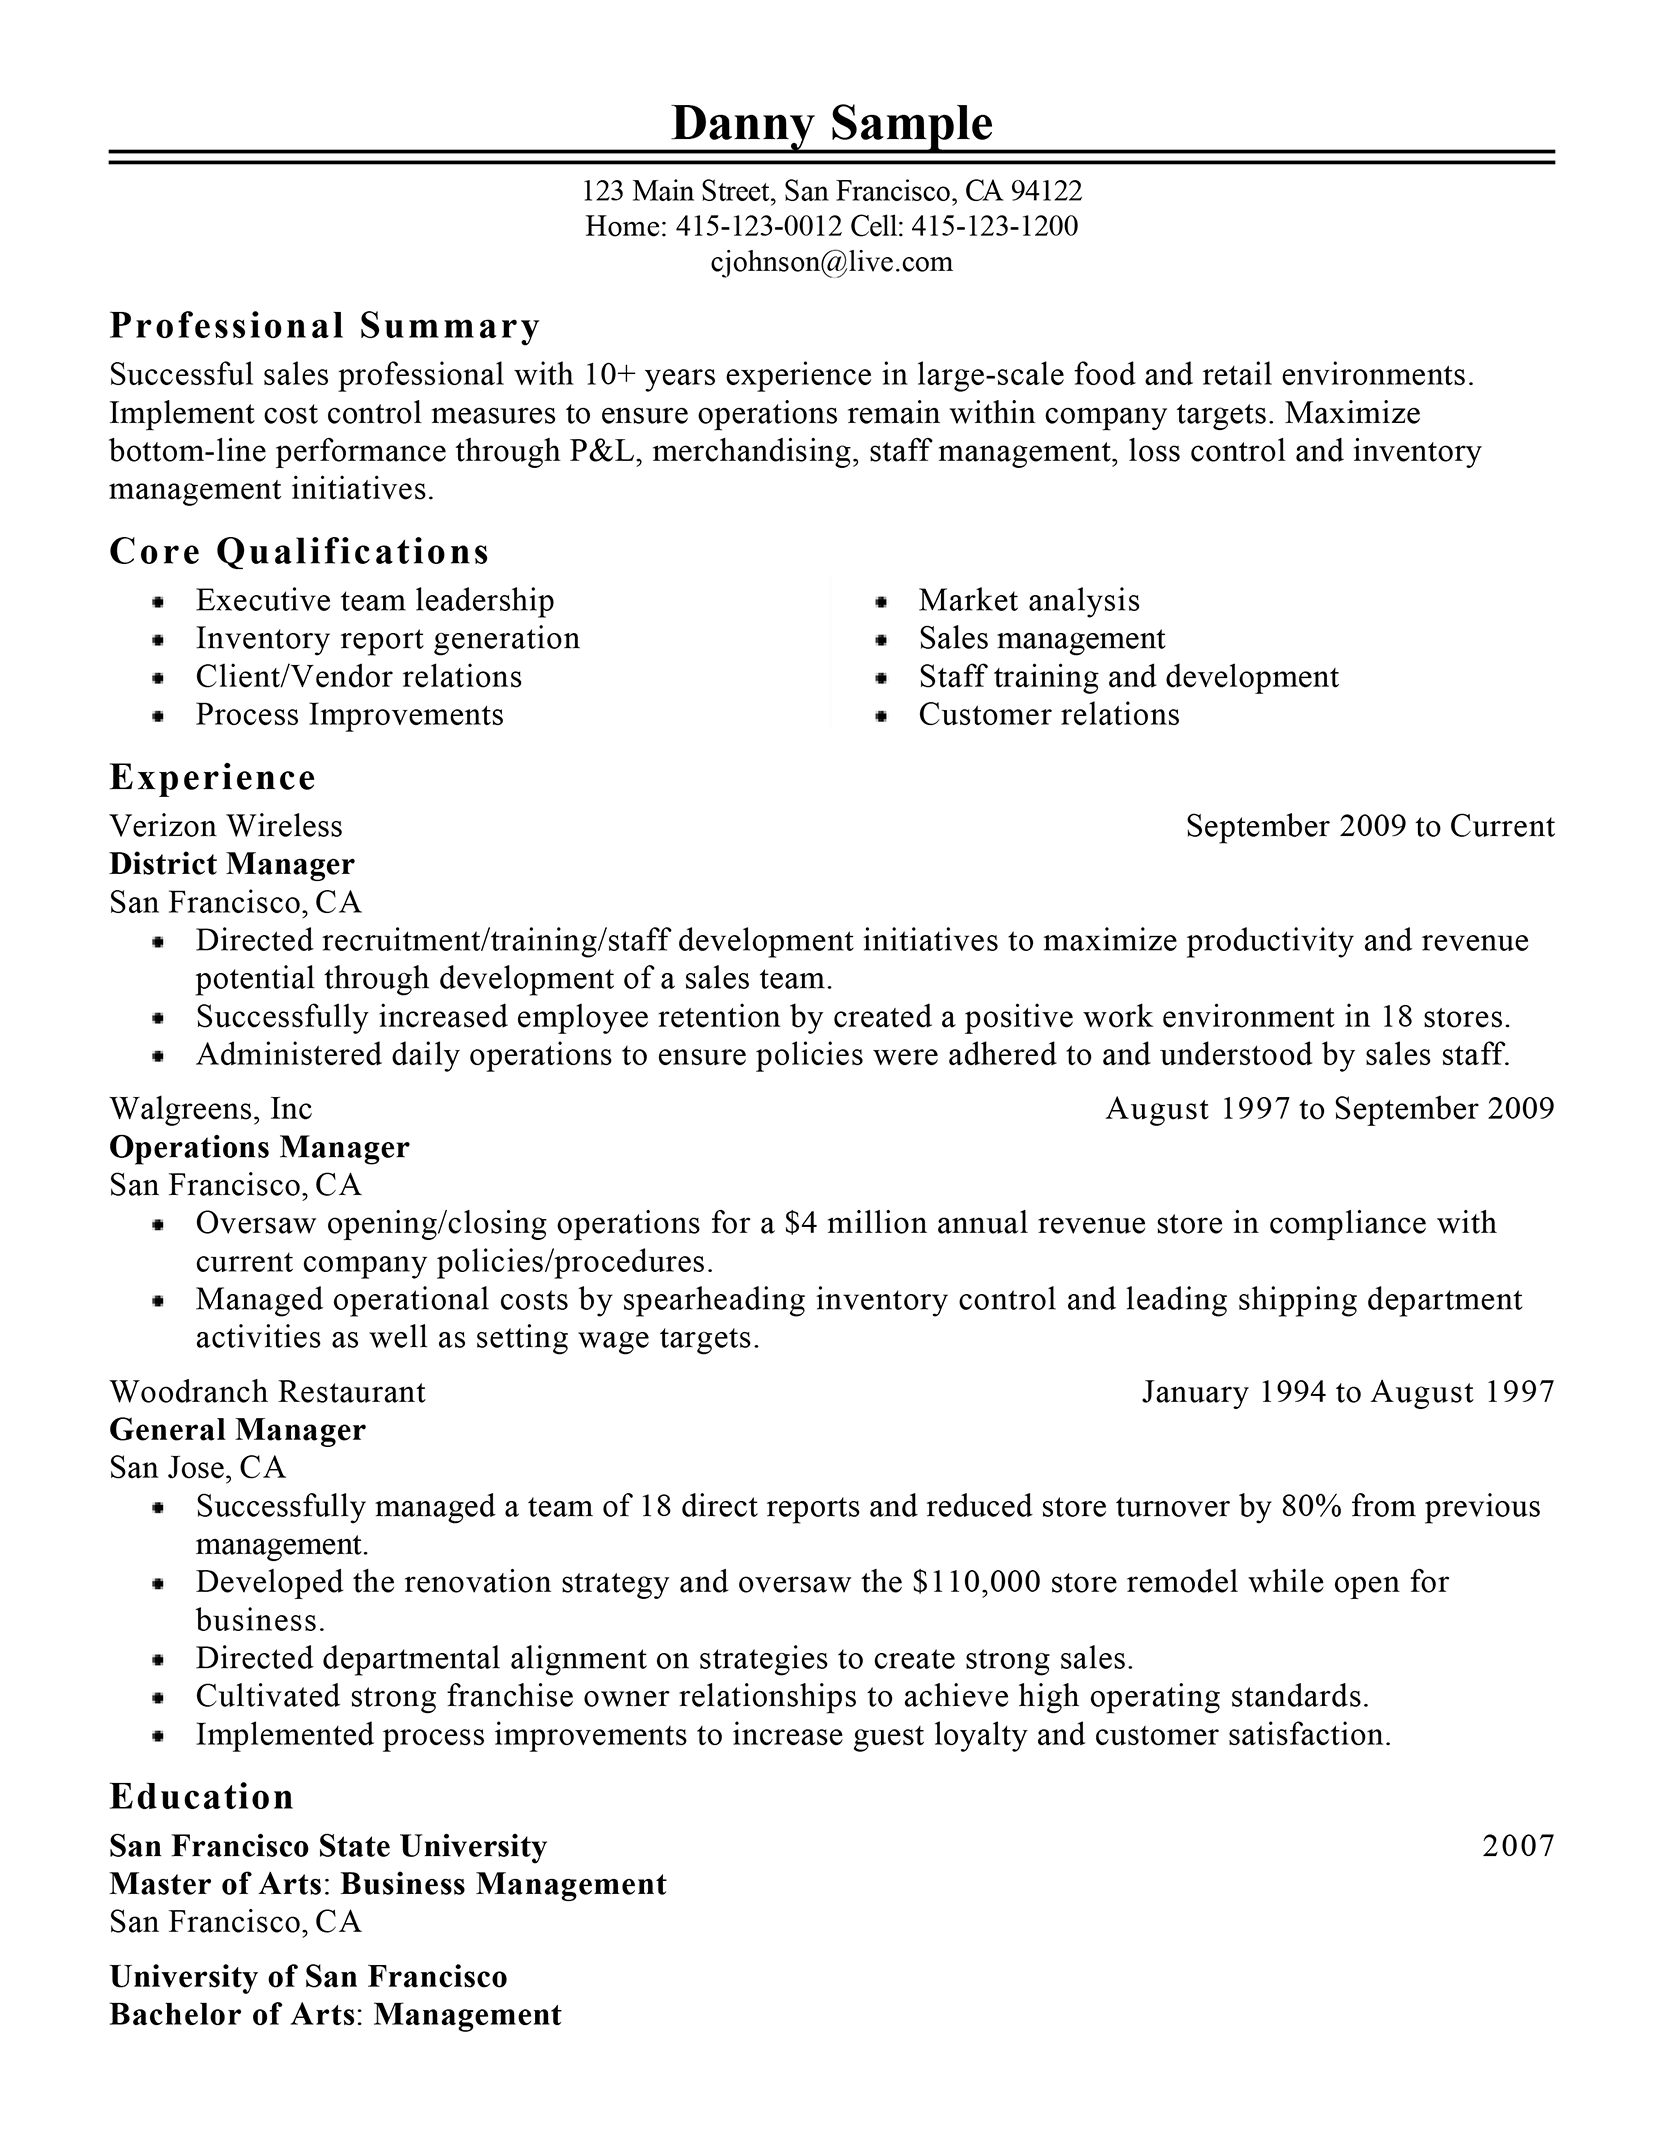 Current Resume Examples 15 Resume Formats Recruiters Love Presentation Matters